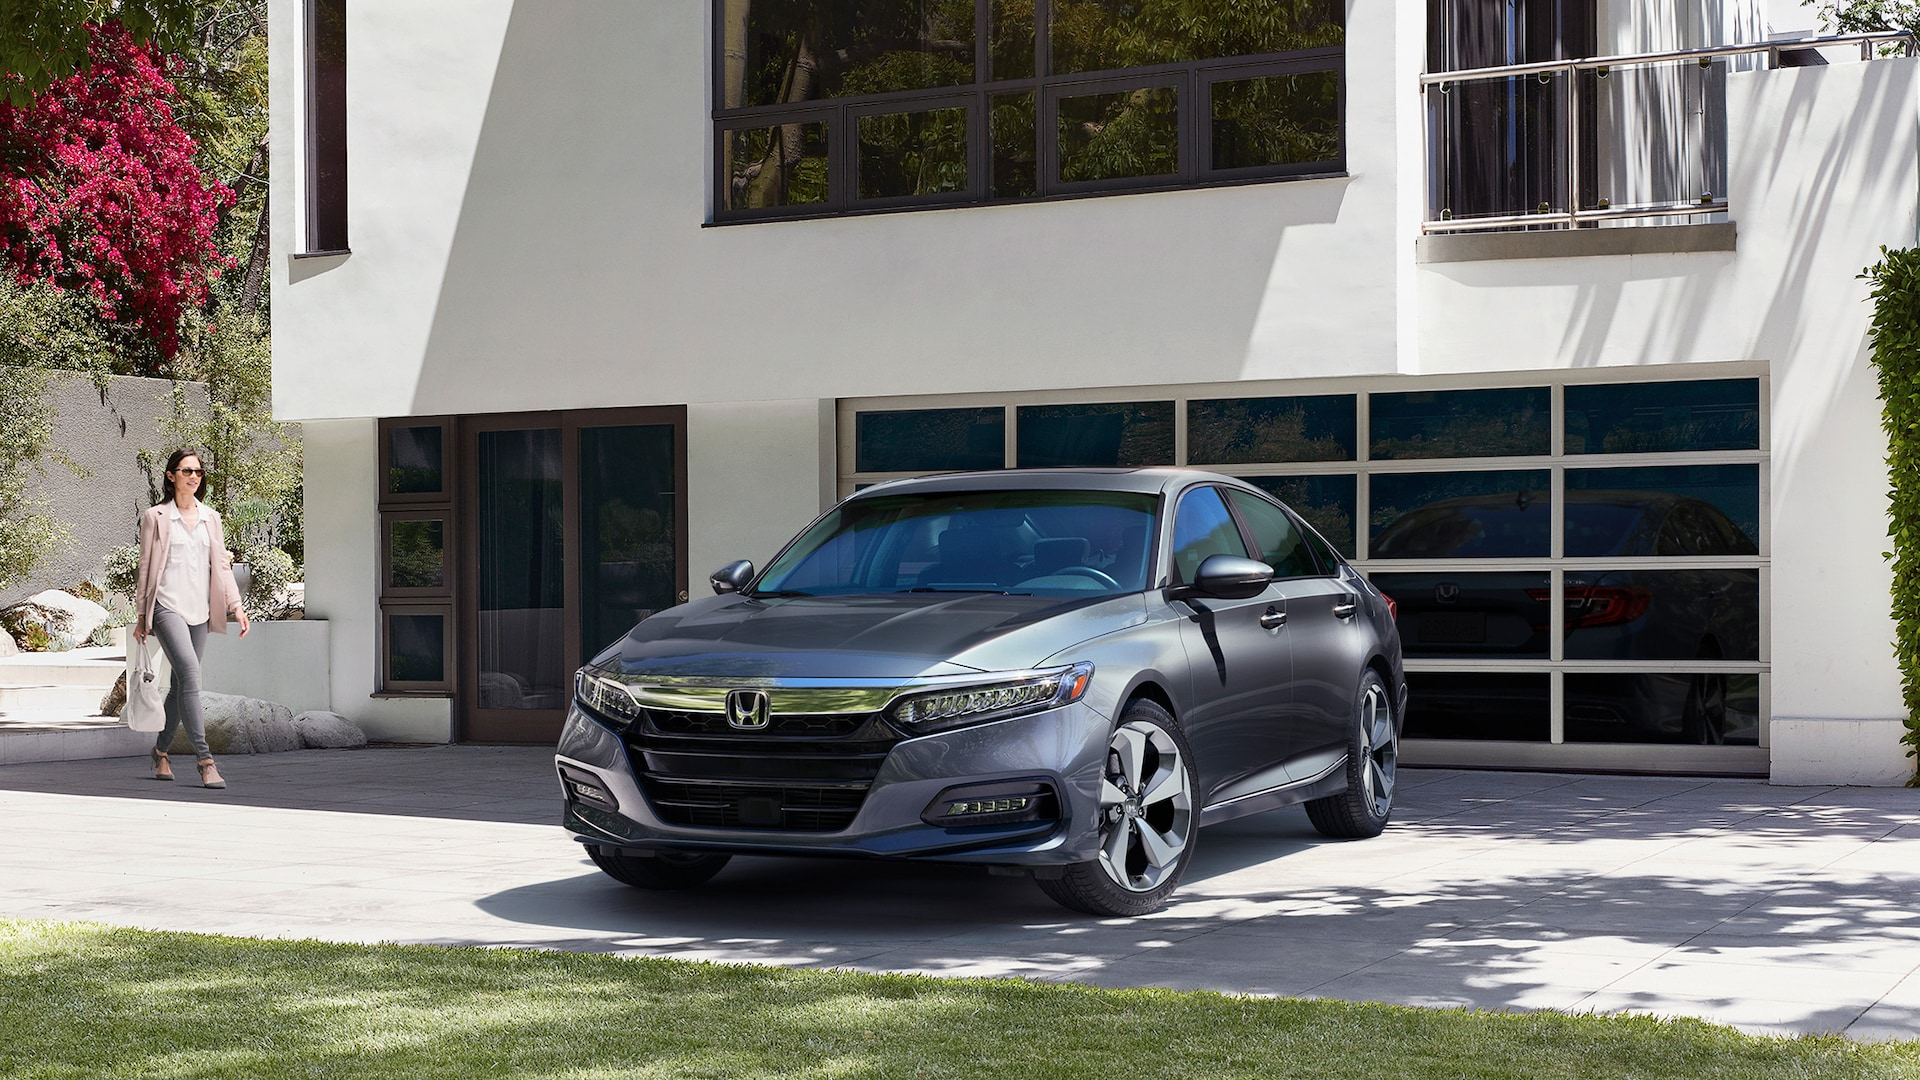 Honda Accord Touring 2.0T 2020 en Modern Steel Metallic, estacionado frente a una casa moderna.